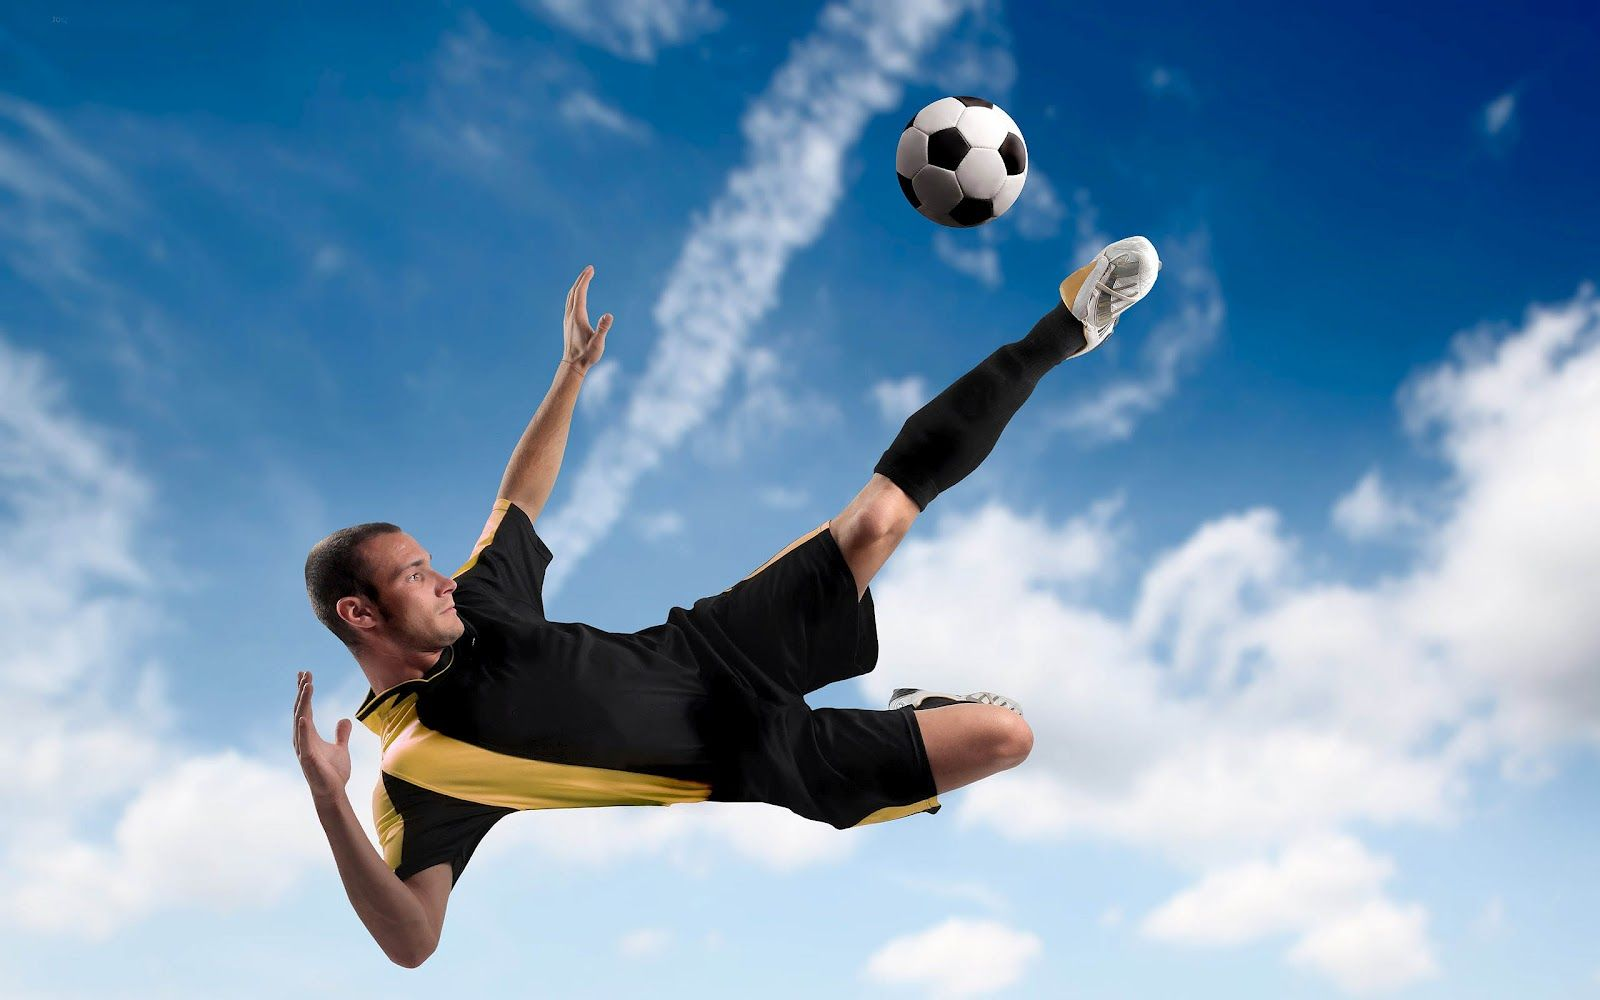 Soccer Wallpapers For Laptop Download Play Soccer Football Wallpaper Sports Wallpapers